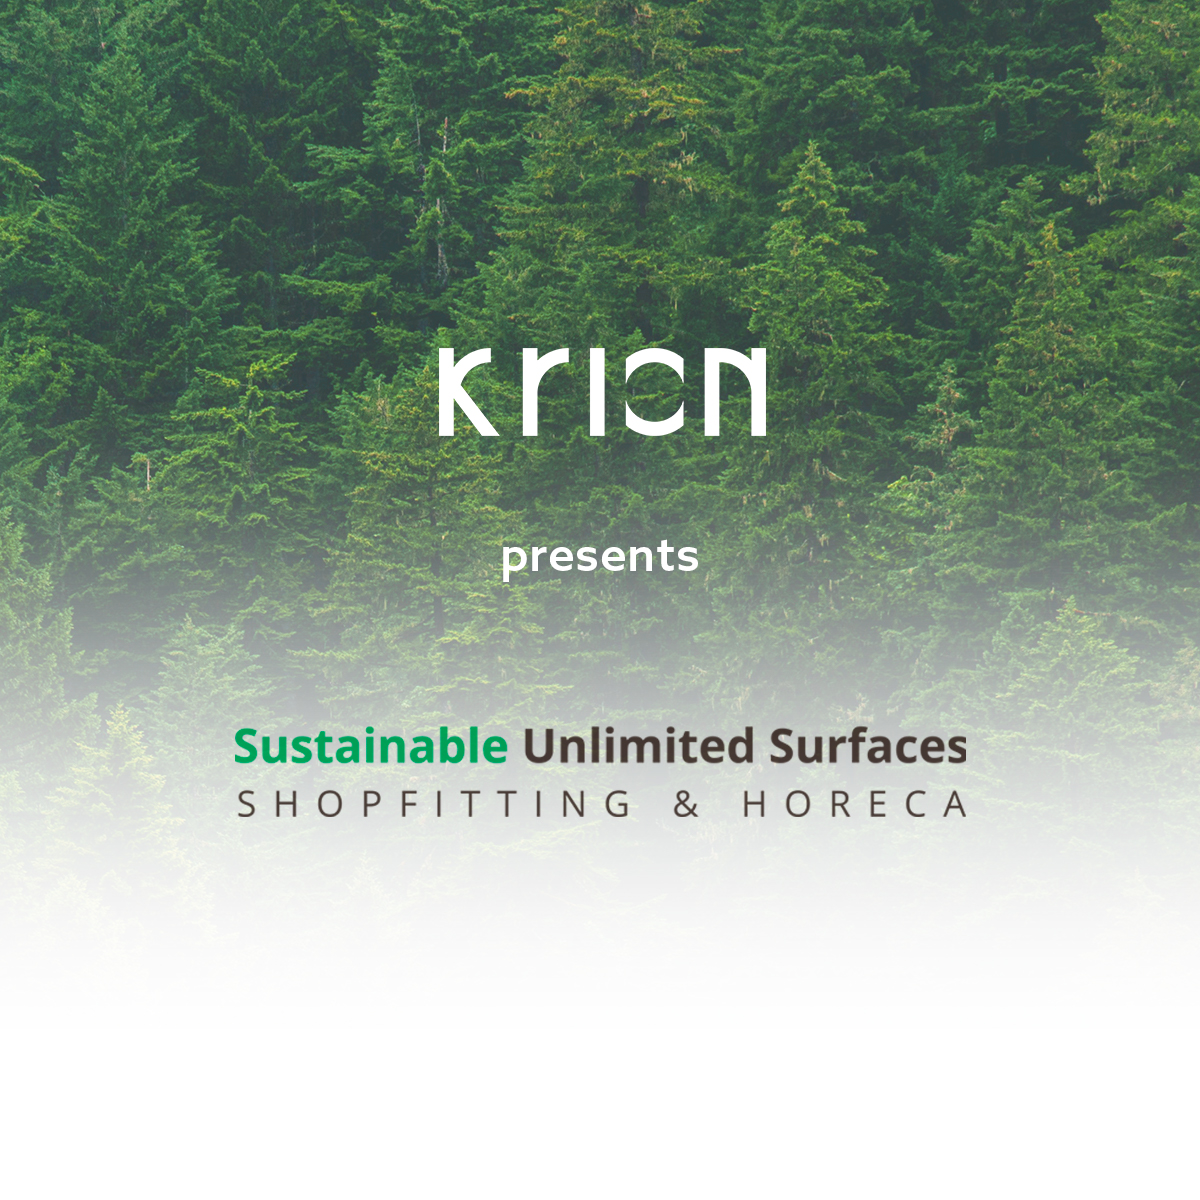 Introducing Krion Sustainable Unlimited Surfaces, Krion's most eco line